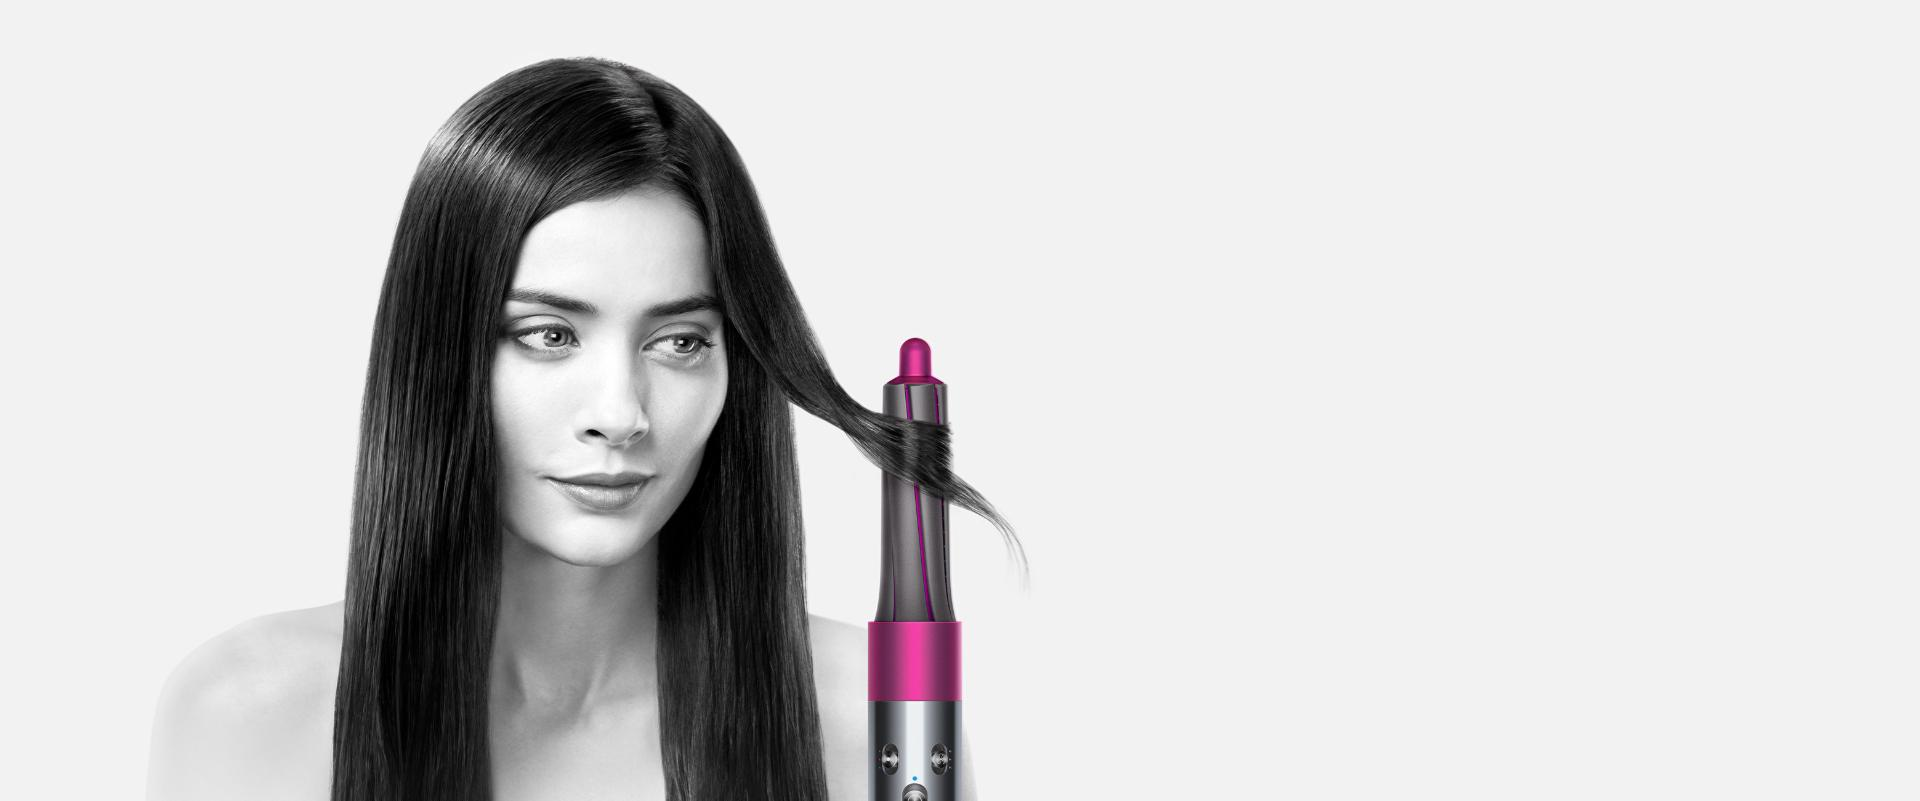 Model demonstrating the Dyson Airwrap™ hair styler on straight hair